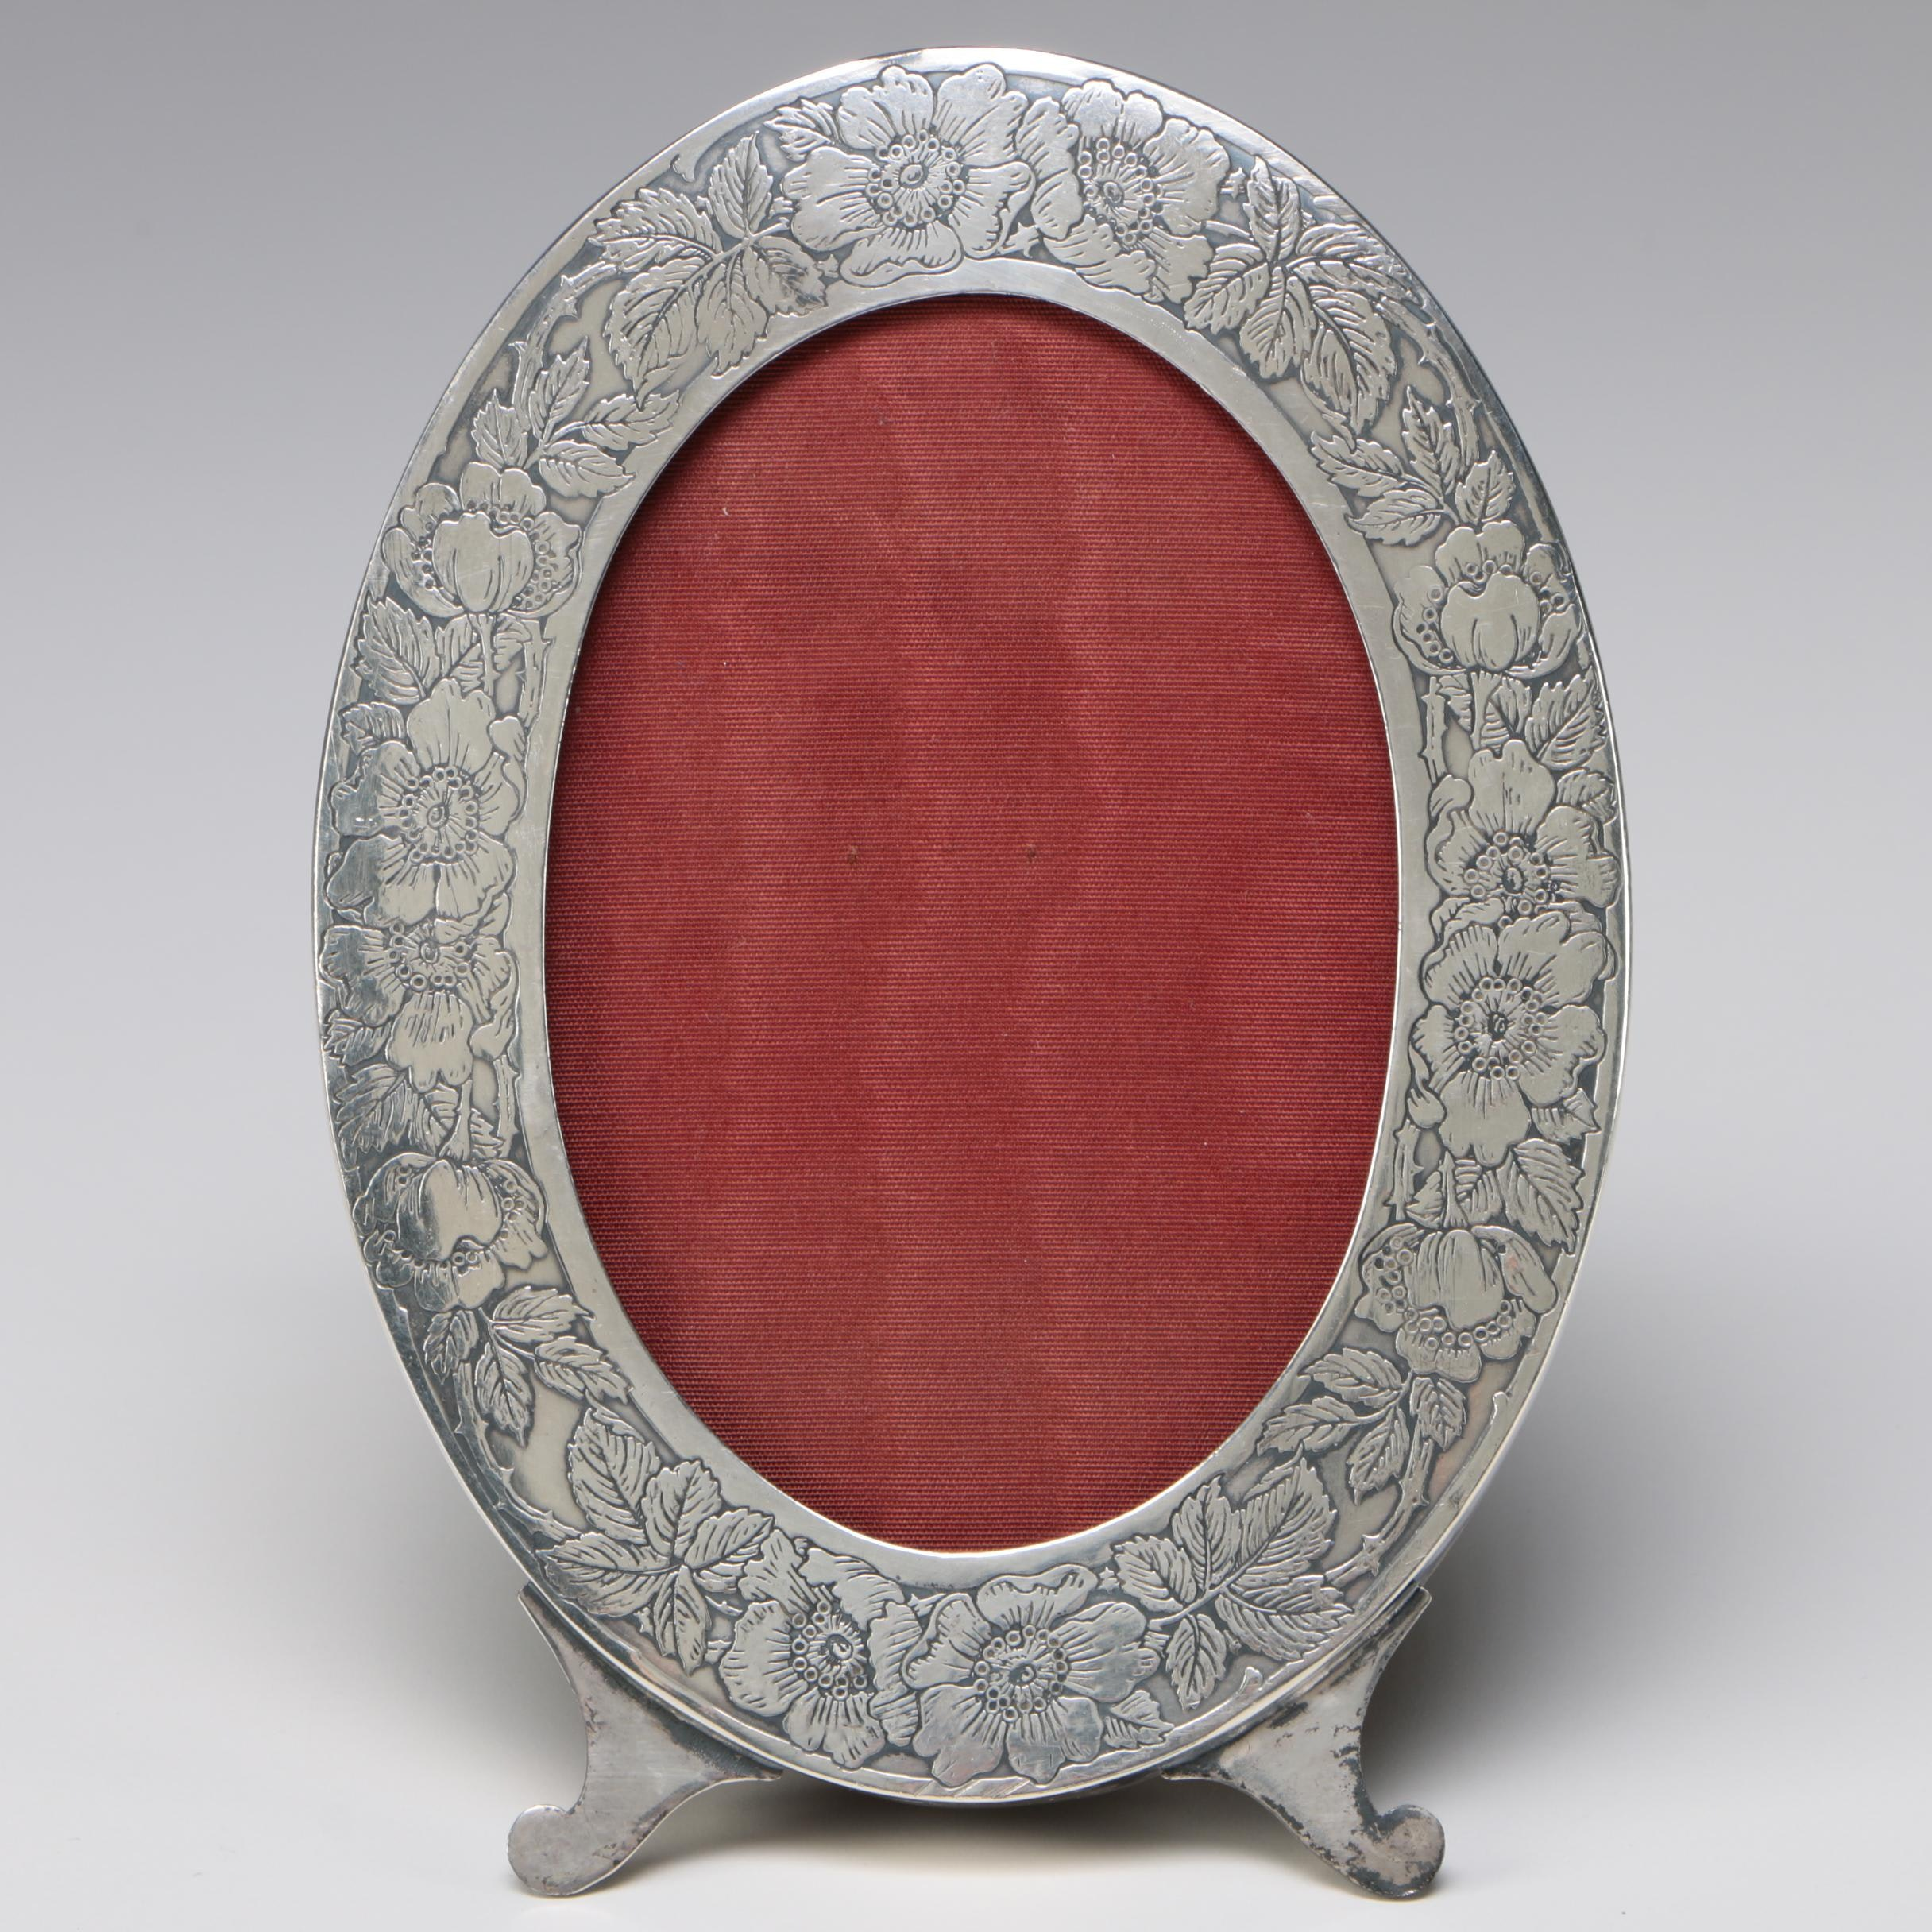 Silver-Plated Chased Floral Oval Picture Frame